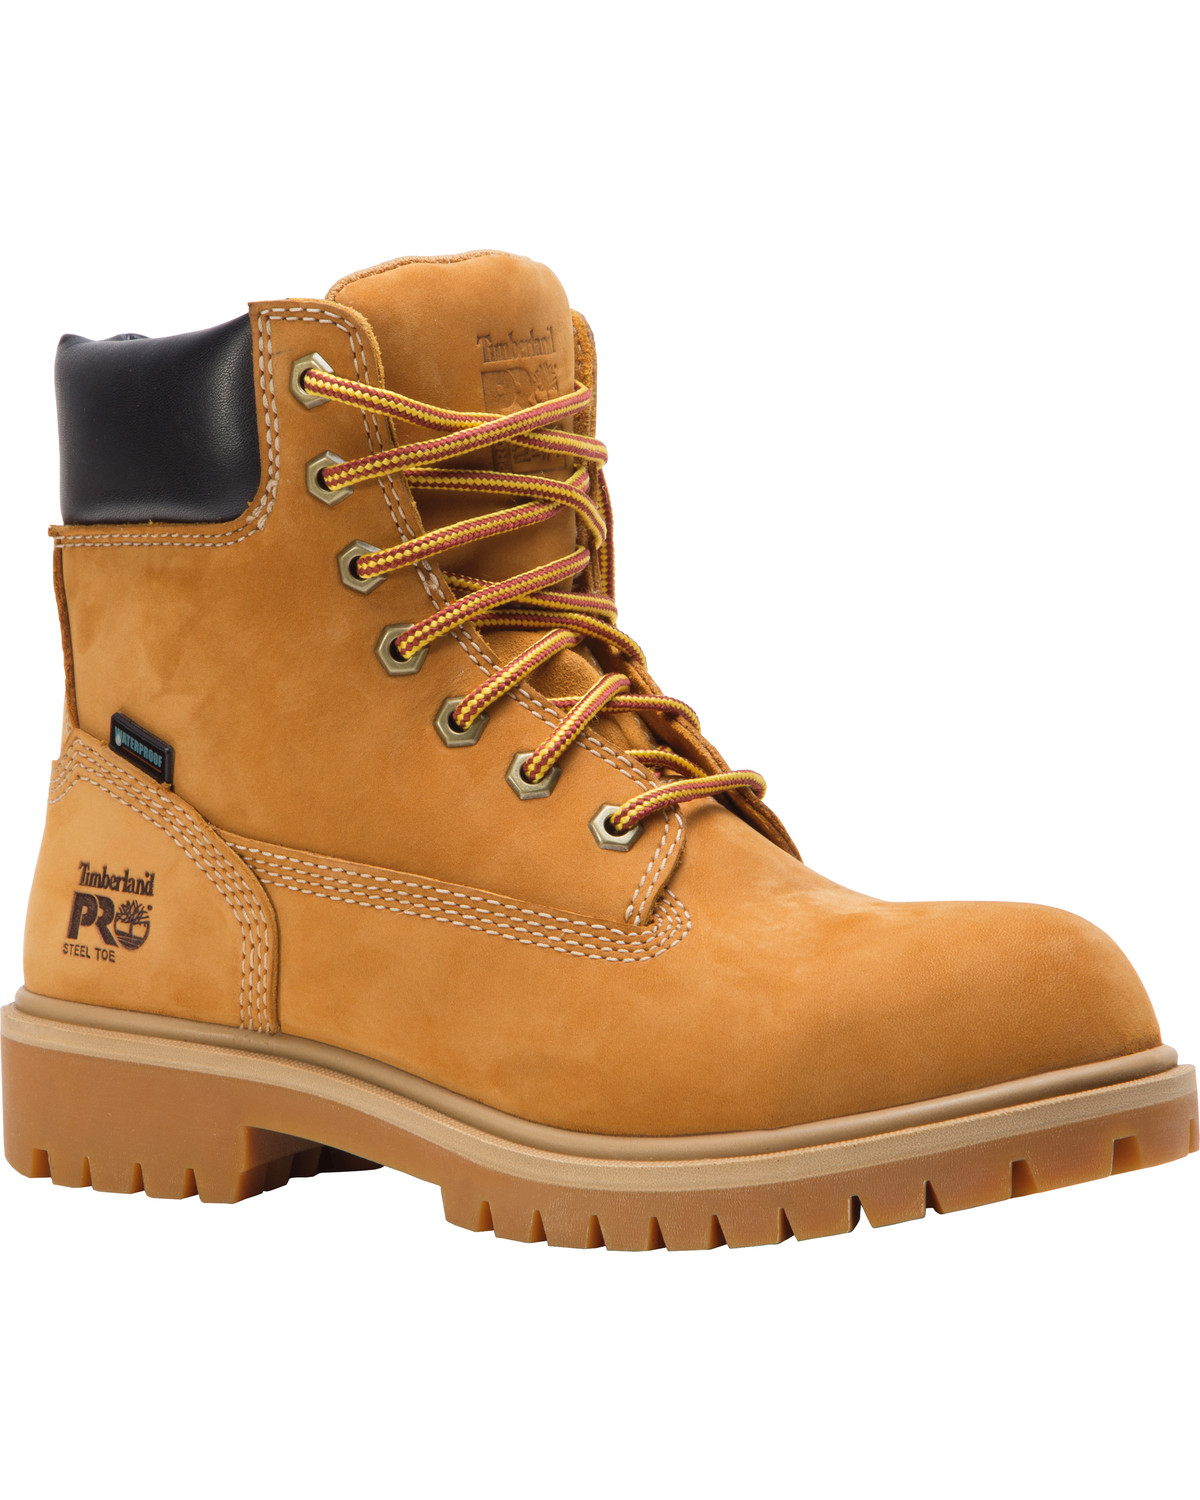 Direct Attach Work Boots - Steel Toe